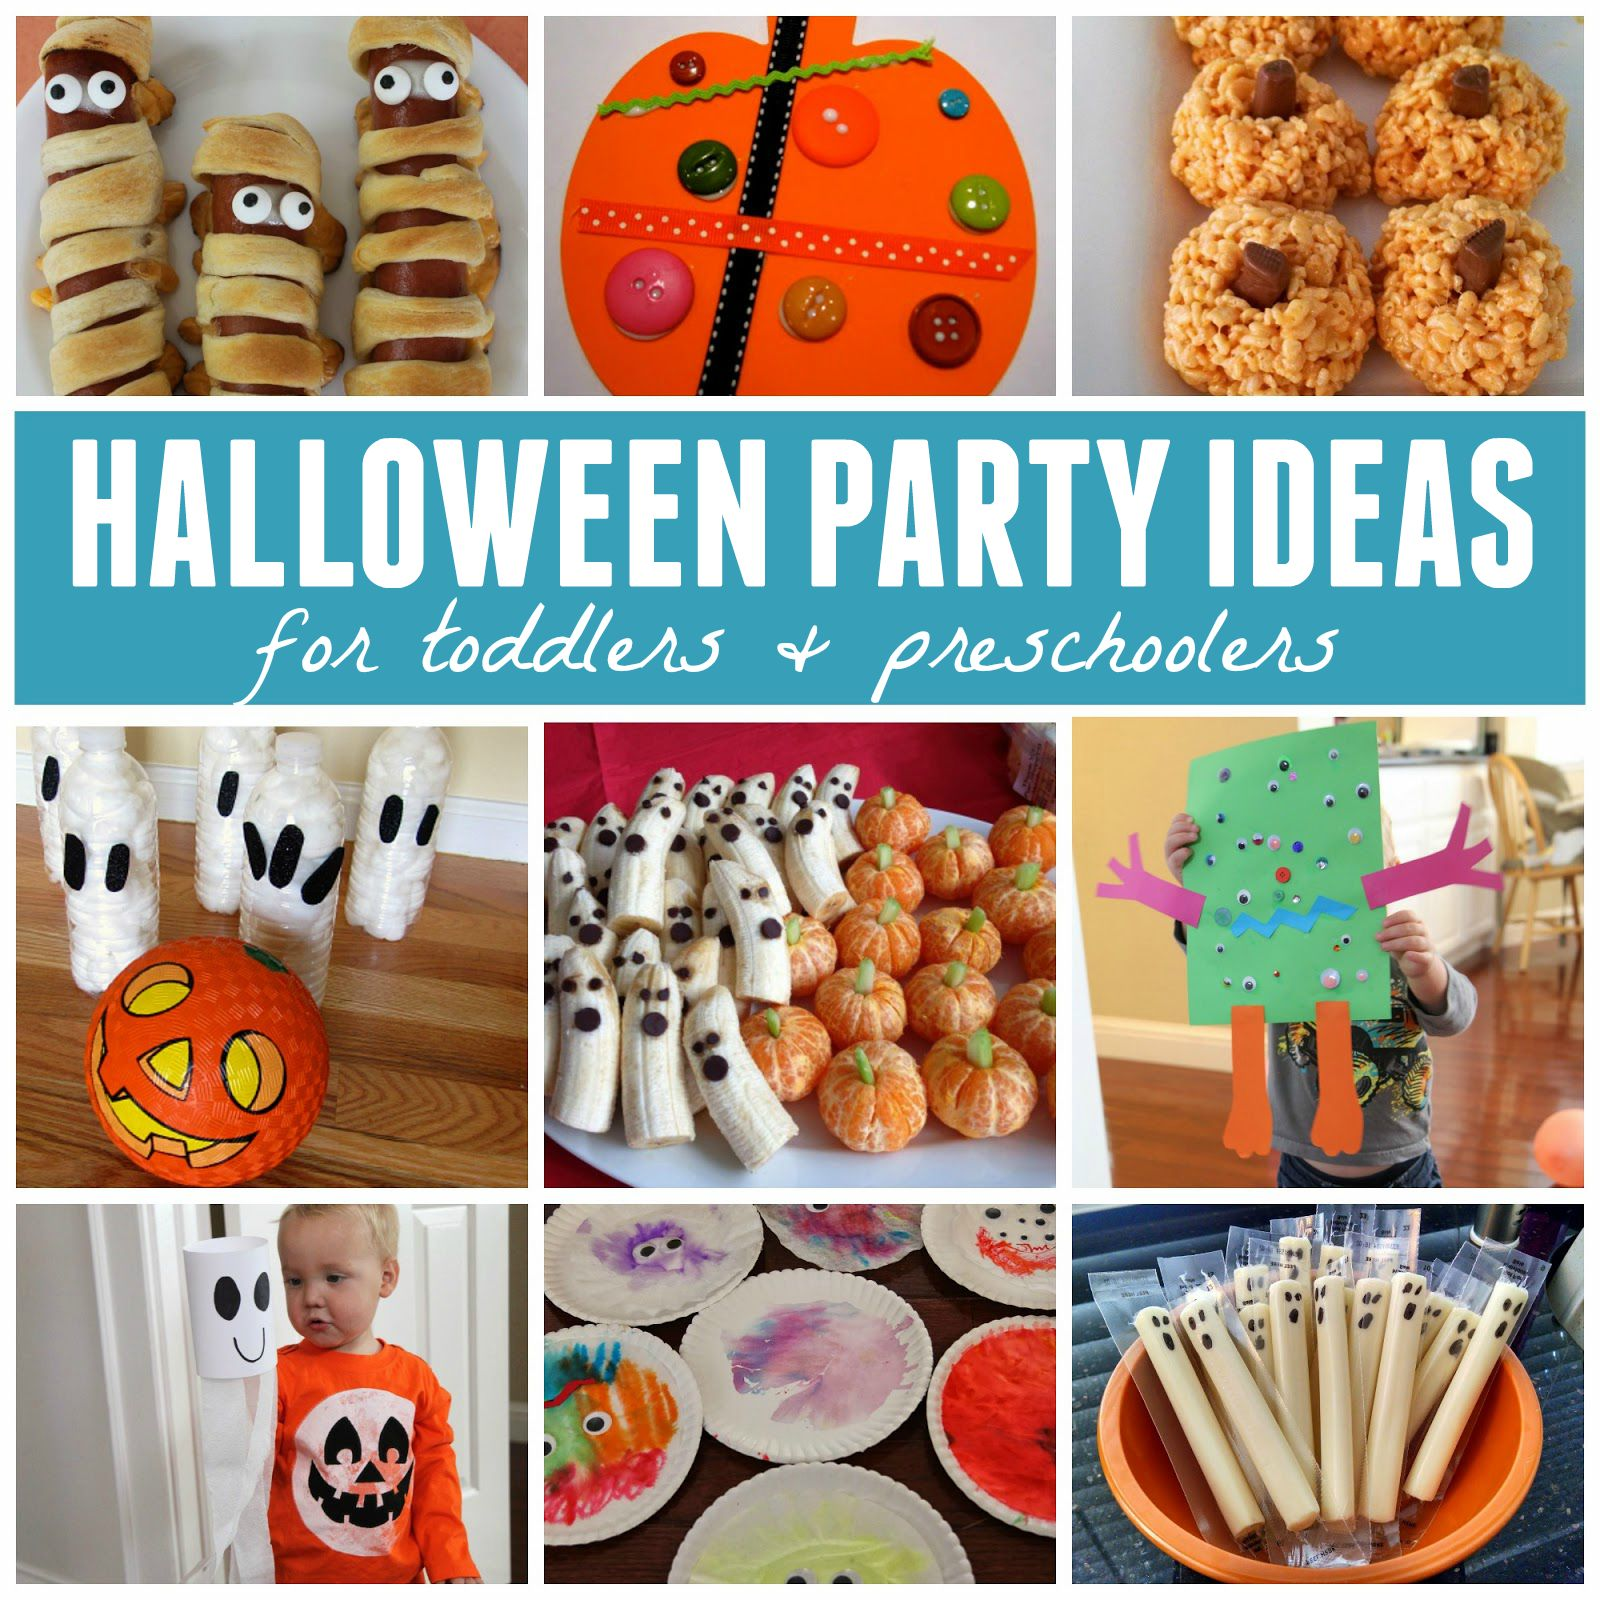 Toddler Approved!: Last Minute Halloween Party Ideas